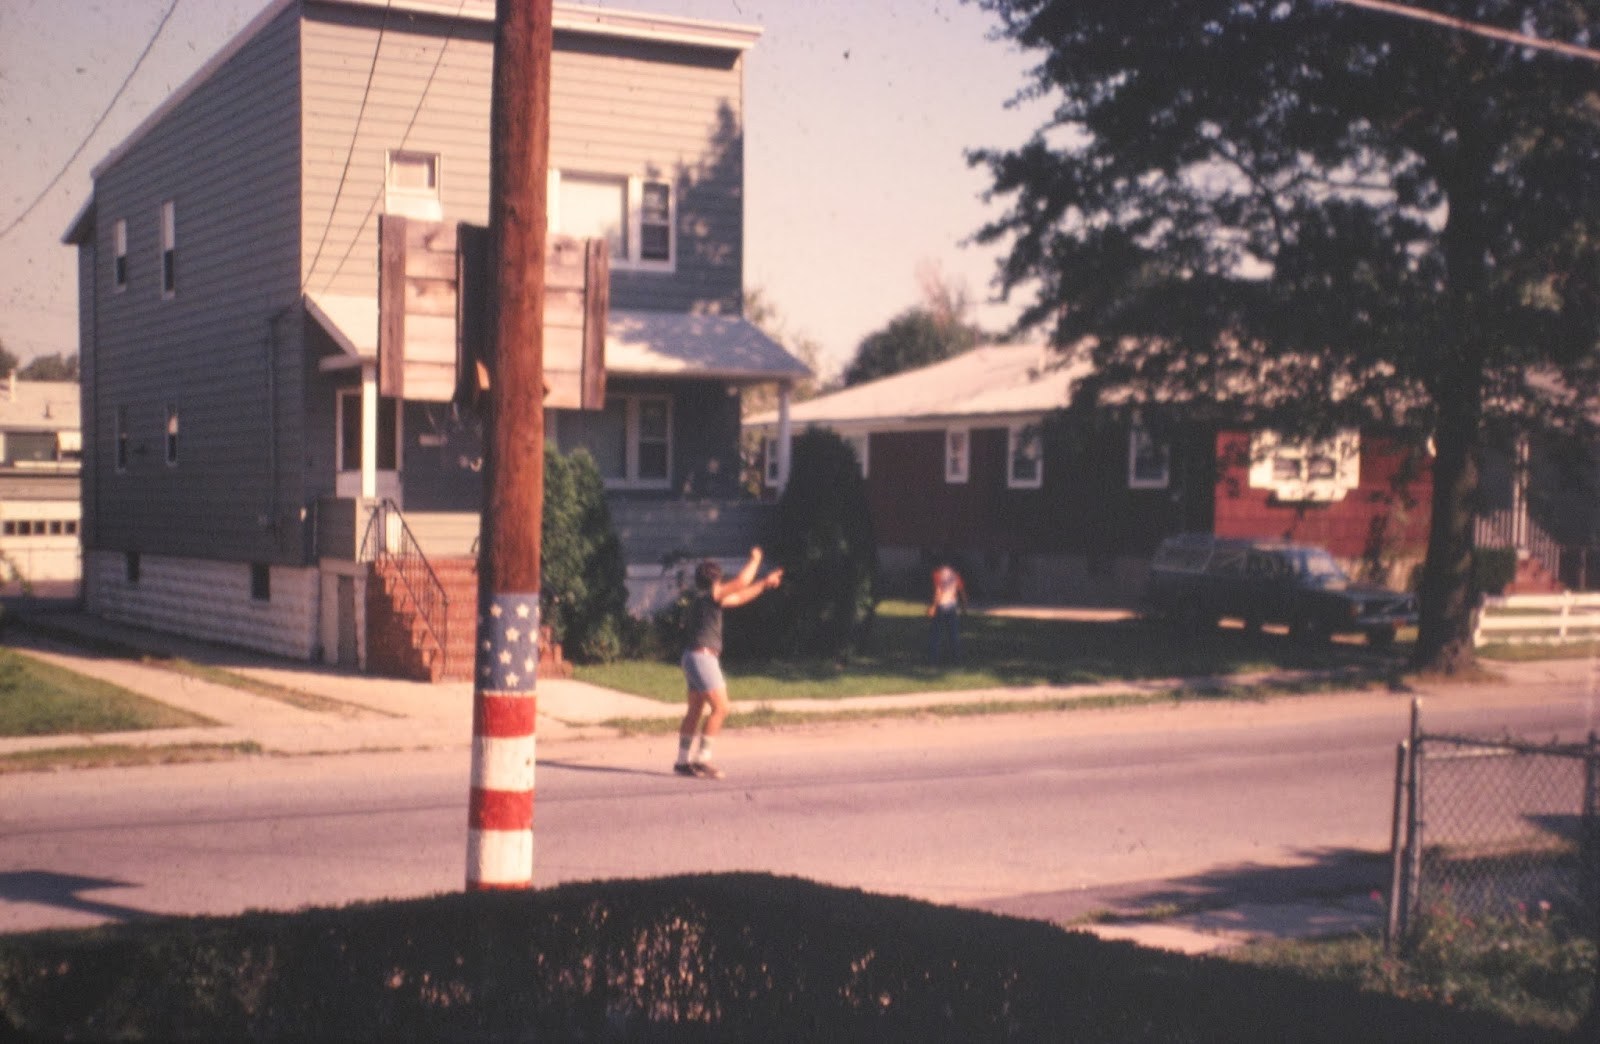 More sports on Simonson ave August 1978